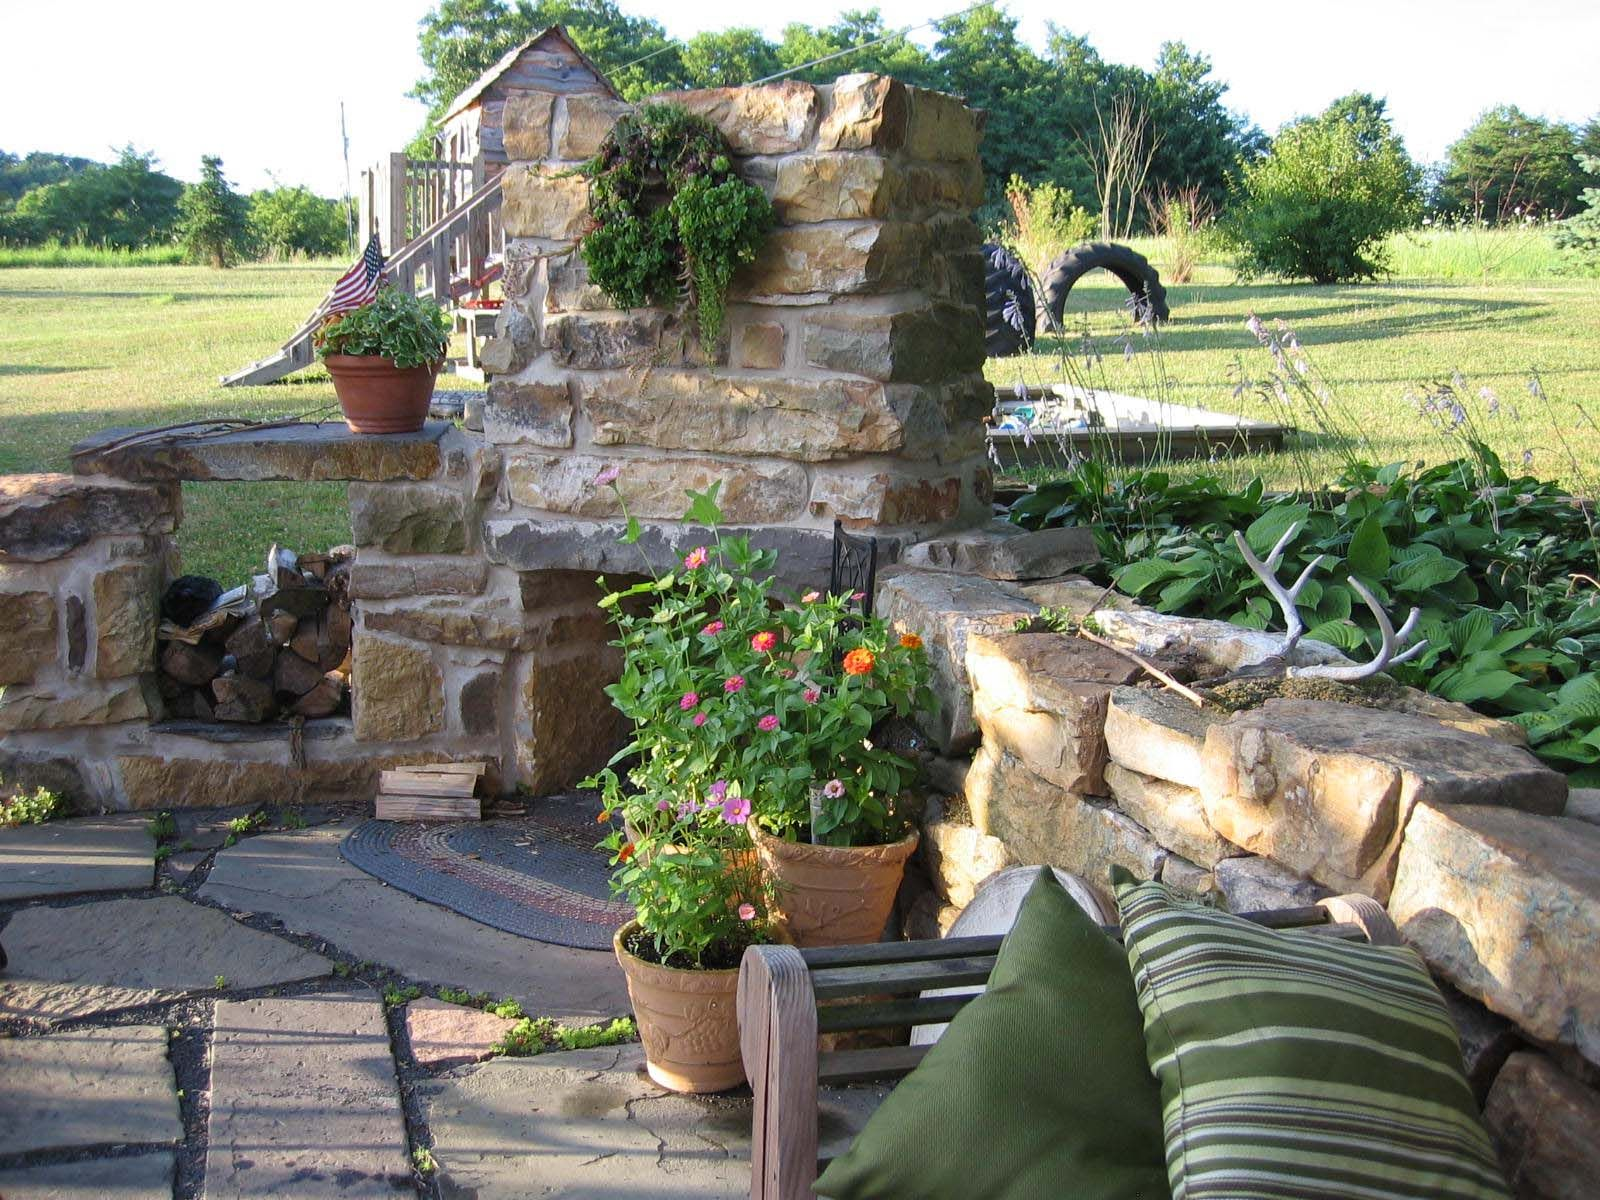 Slate patio and outdoor fireplace made of foundation stones from